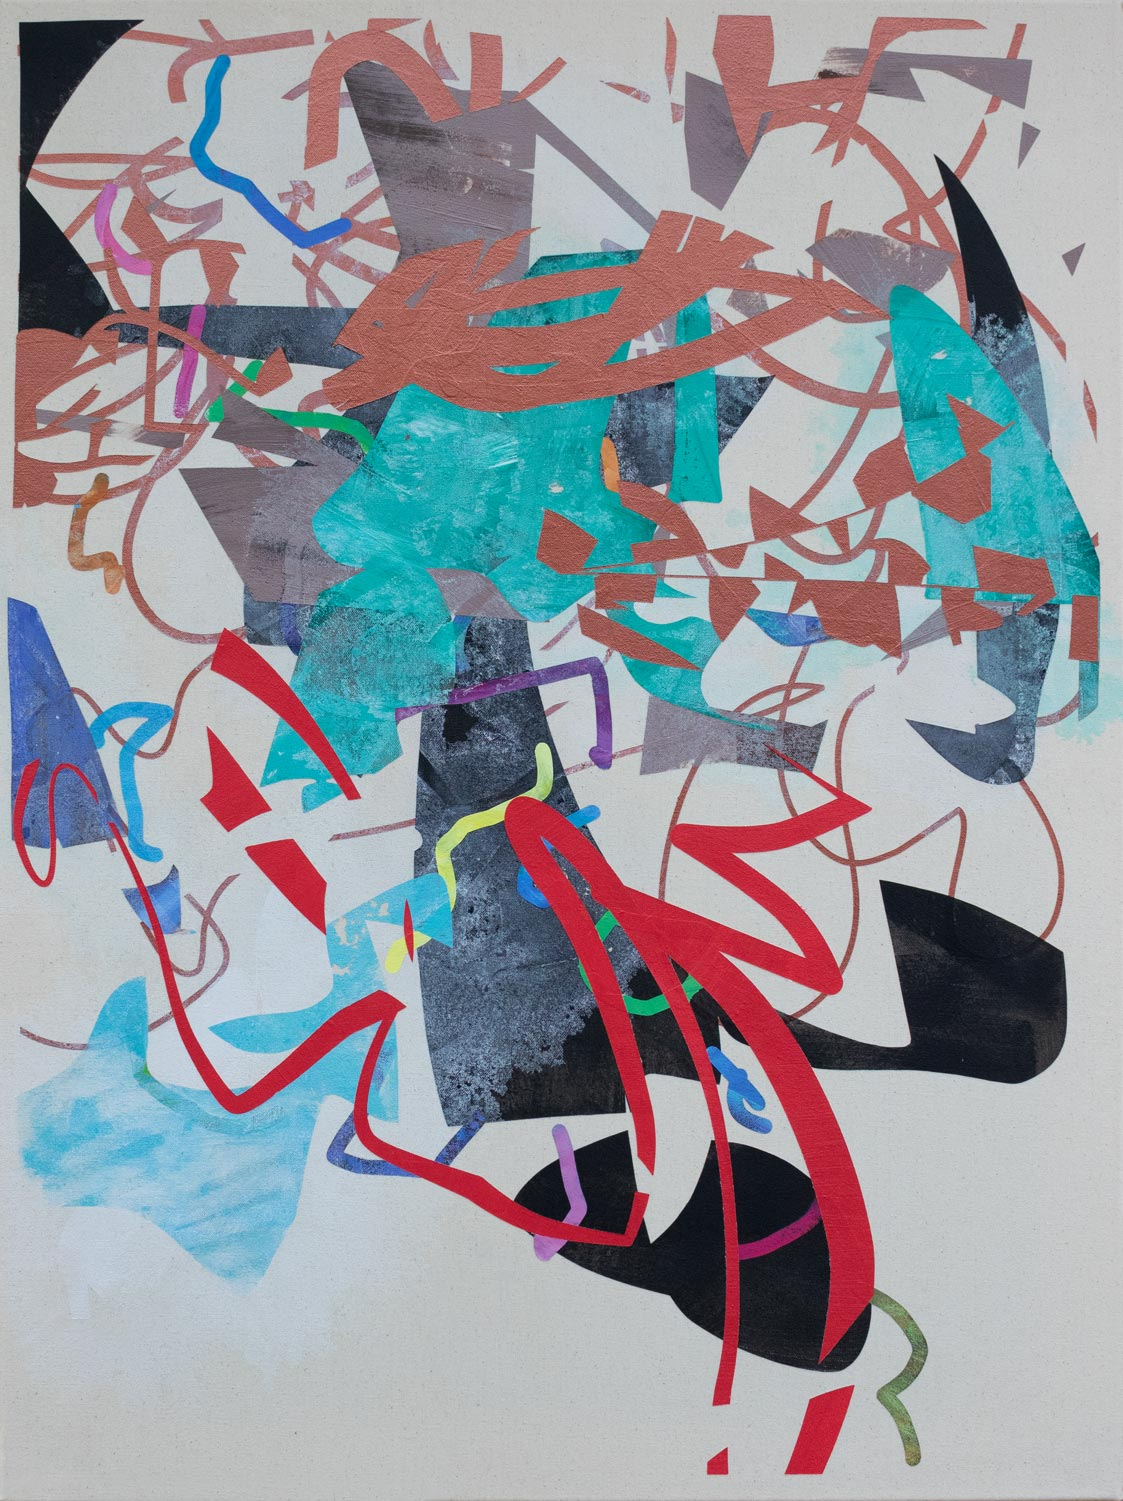 An abstract painting by John Cake called Opera Site Youth Hey!